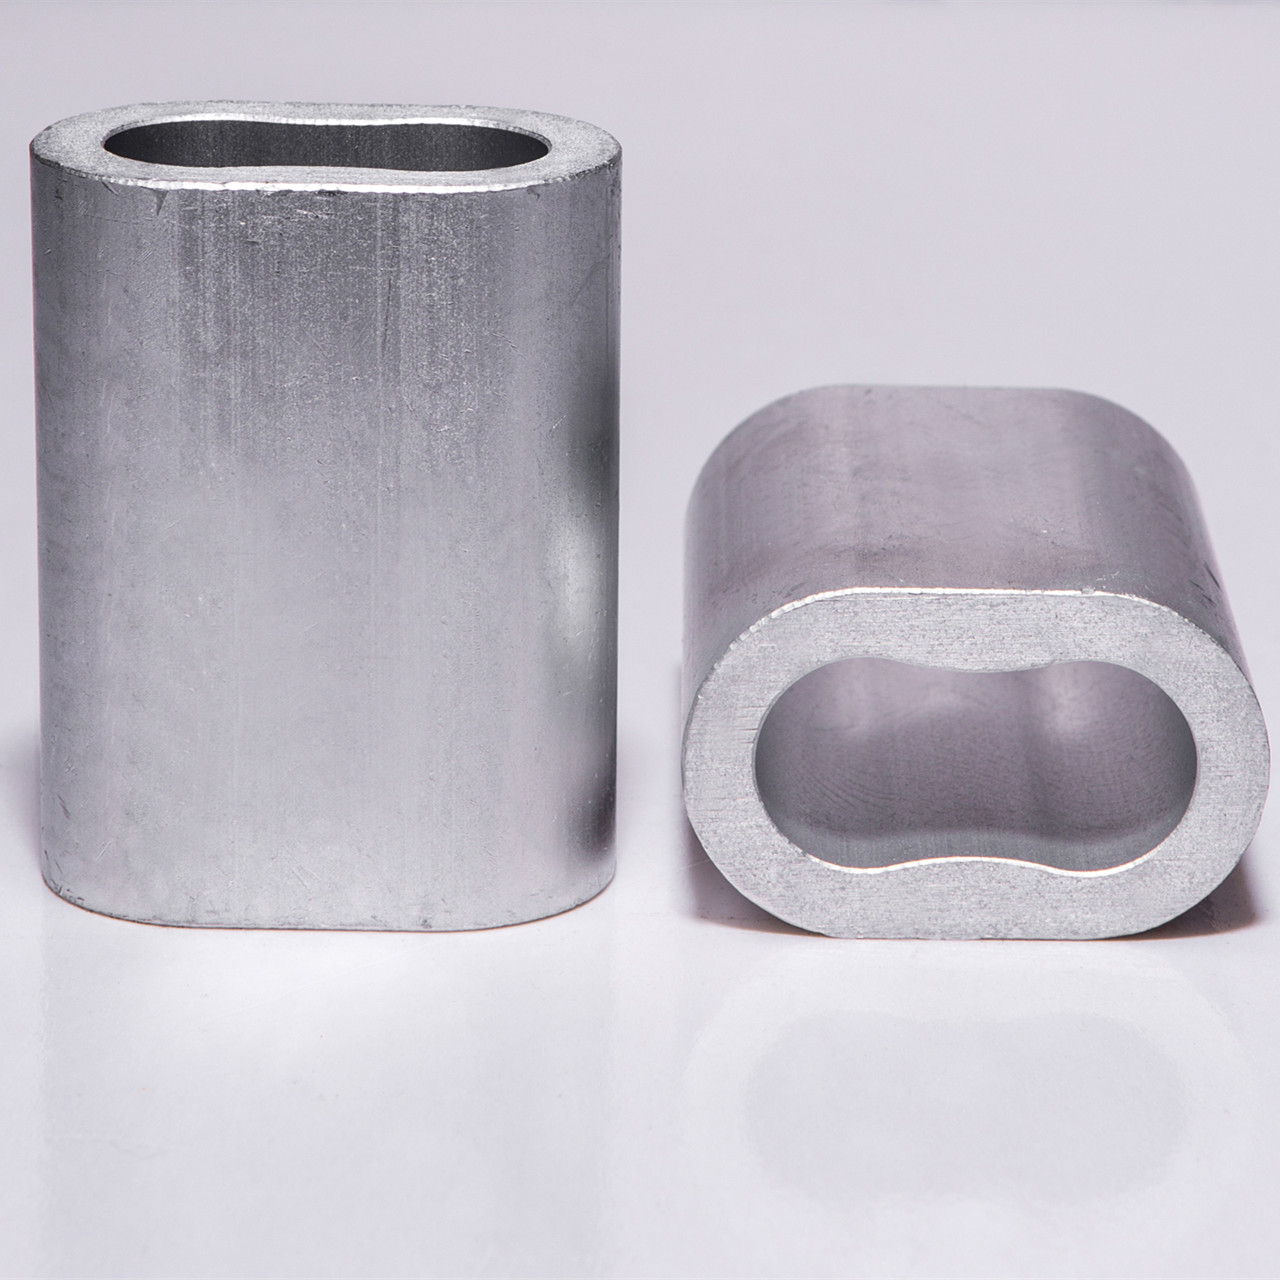 https://www.fayean-ssfittings.com/img/aluminium_ferrules_jis_type-29.jpg